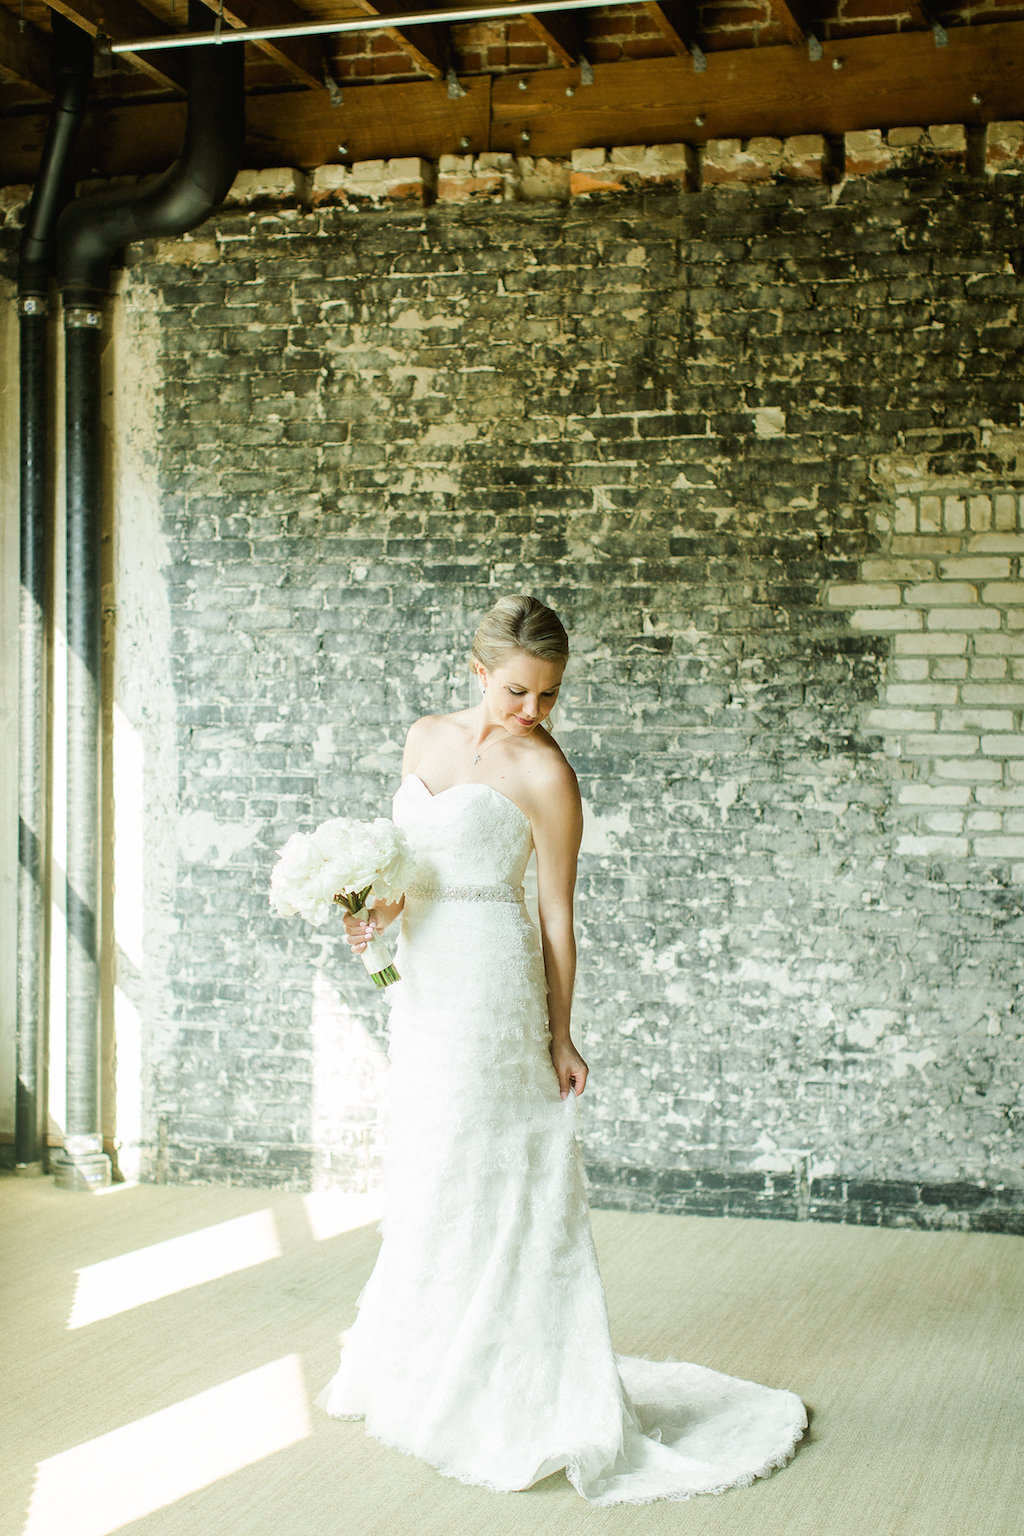 Industrial Indoor Bridal Portrait in Strapless Belted Robert Bullock Wedding Dress with White Floral Bouquet   Tampa Bay Wedding Photographer Ailyn La Torre Photography   Venue The Oxford Exchange